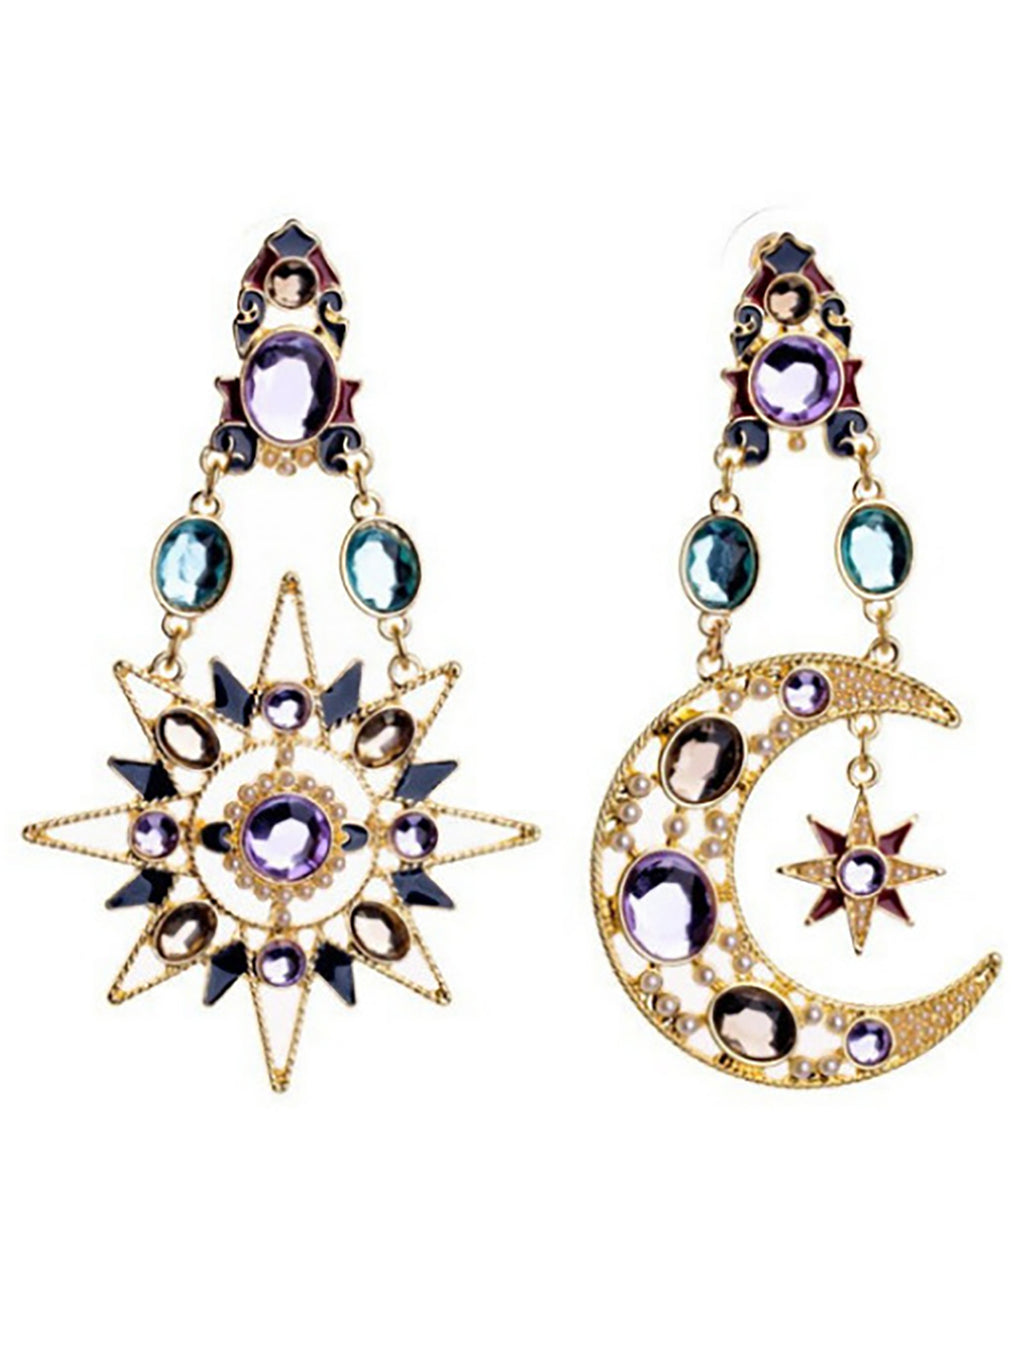 Newest Fashion Moon Star Sun Jewel Pendant Earrings